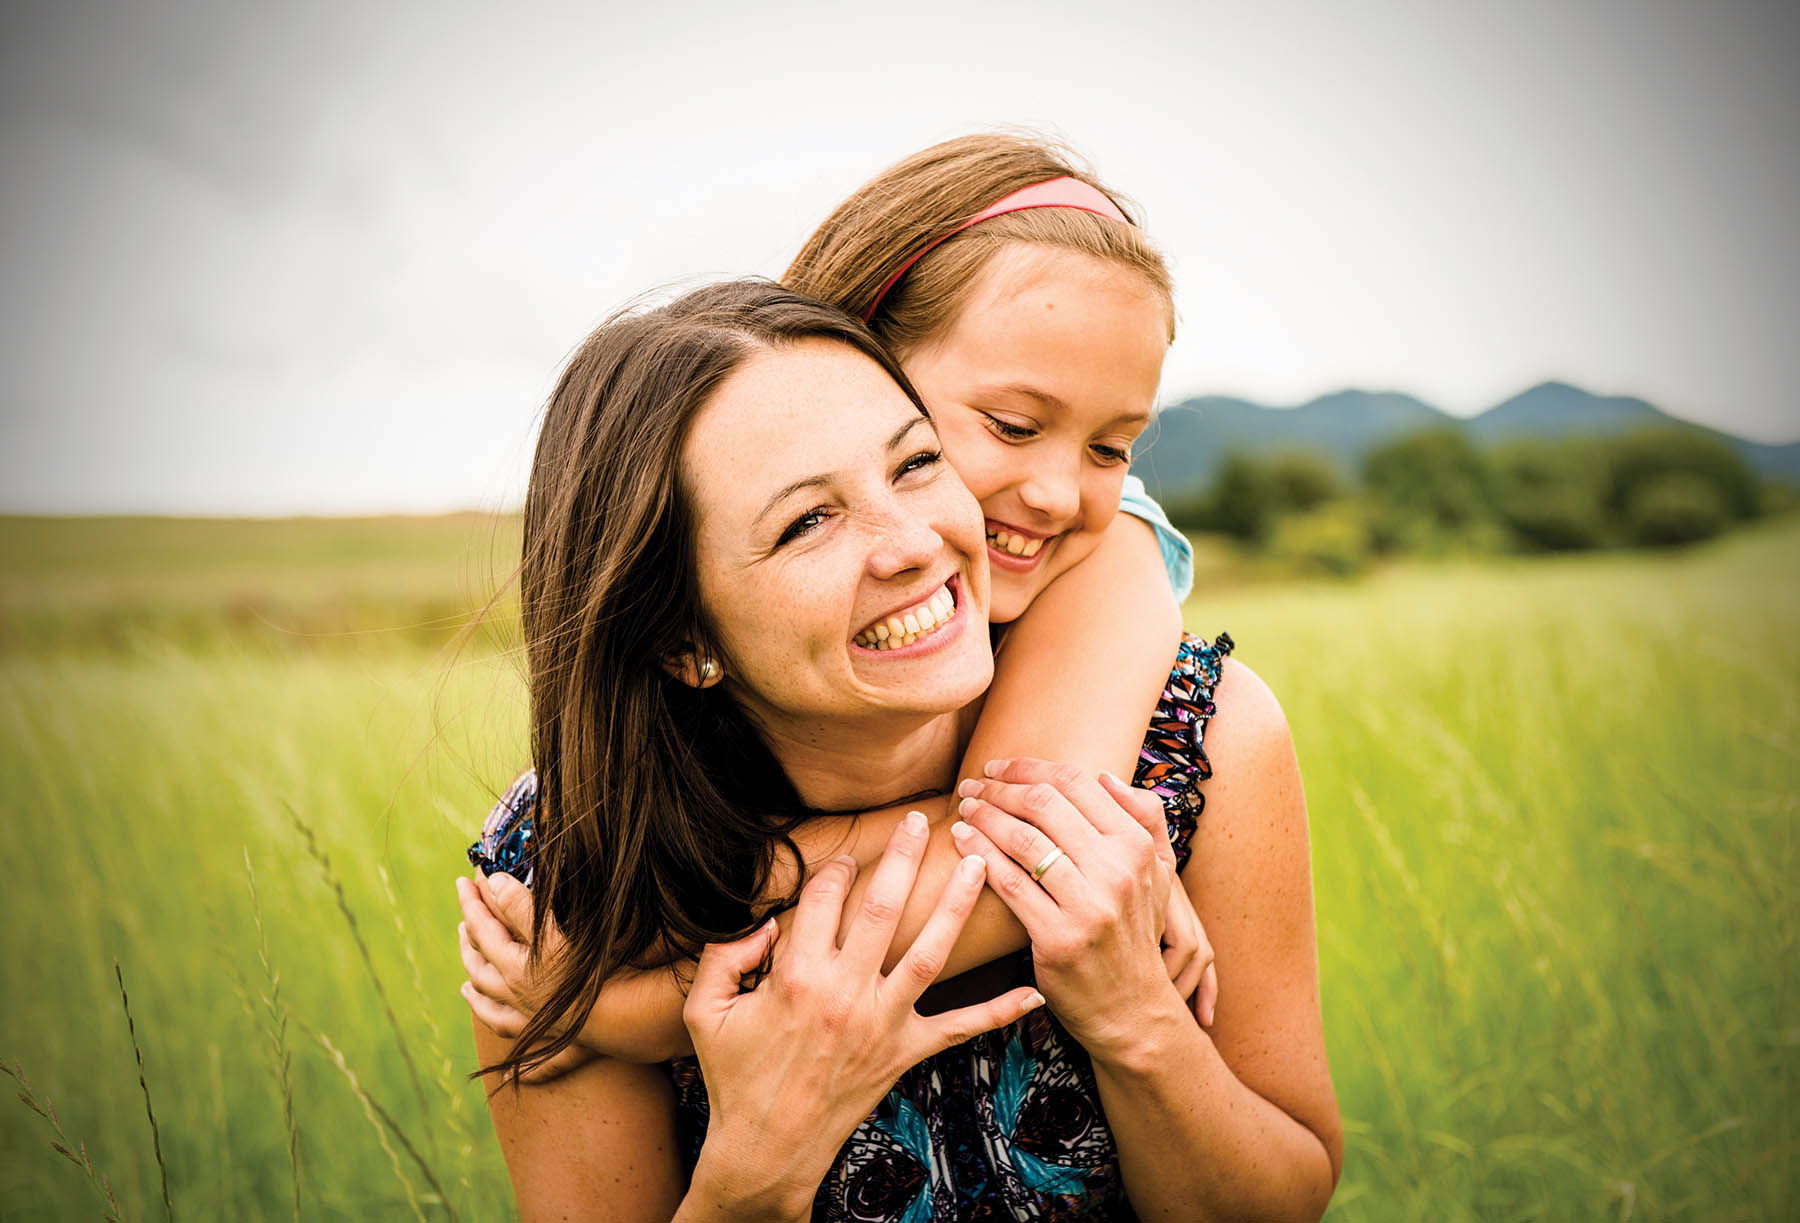 Mom and daughter in a grassy field